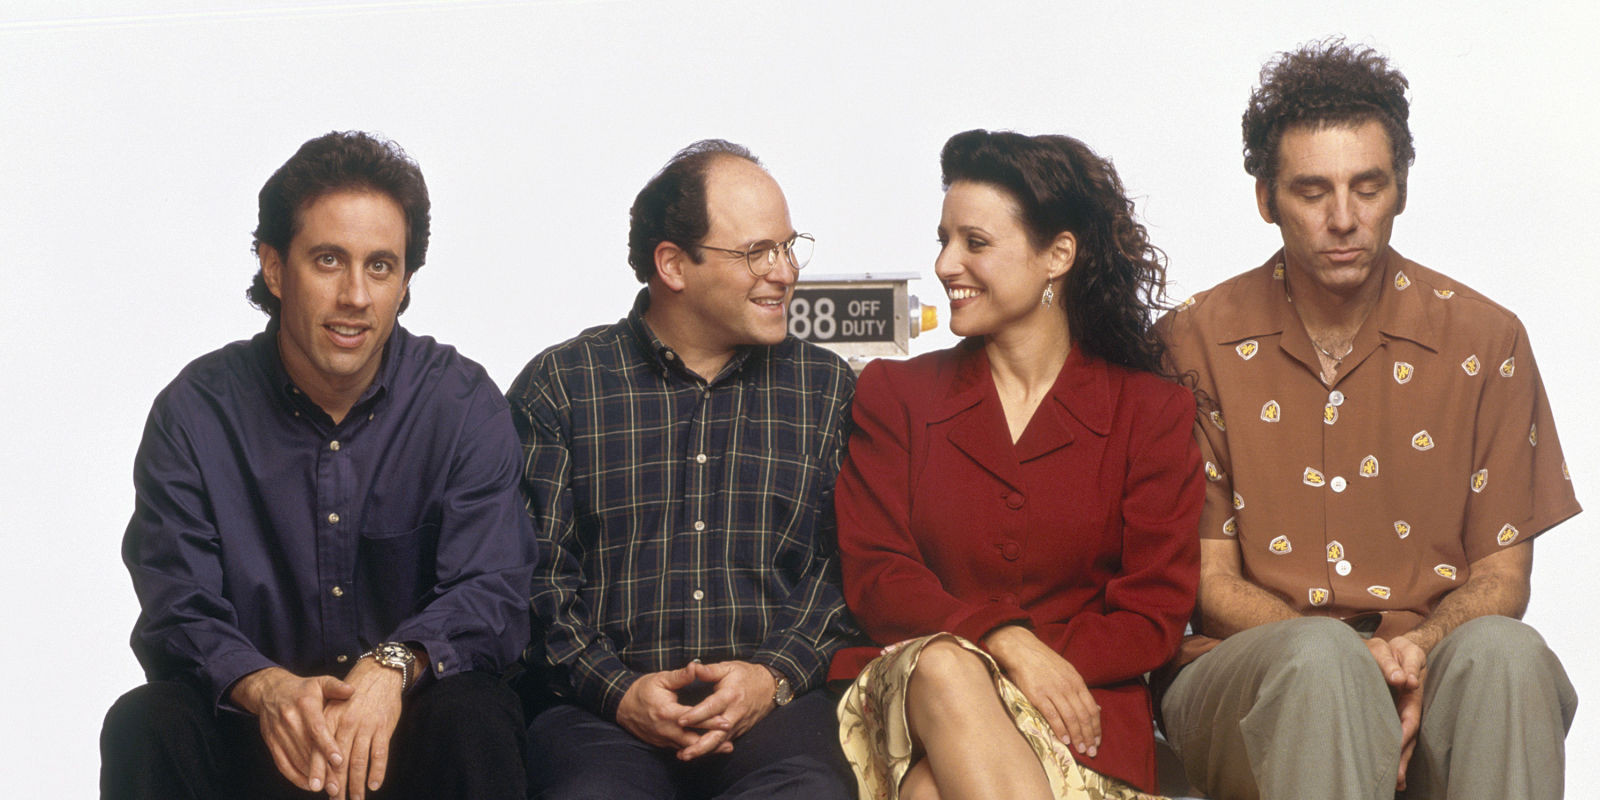 Best ideas about The Birthday Wish Cast . Save or Pin Seinfeld cast wish a terminally ill fan happy birthday Now.